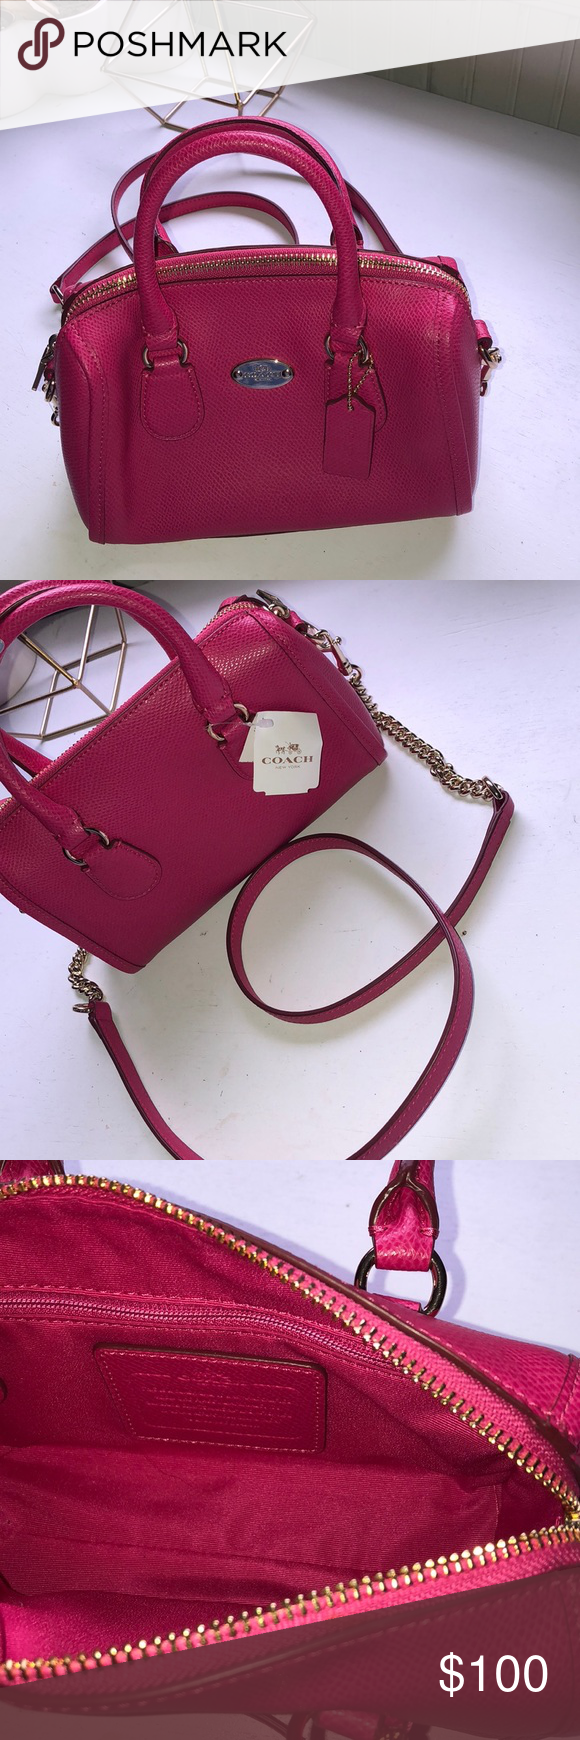 9663246ec2a coach mini purse mini leather pink ruby purse with gold chain and logo with  detachable strap Coach Bags Mini Bags